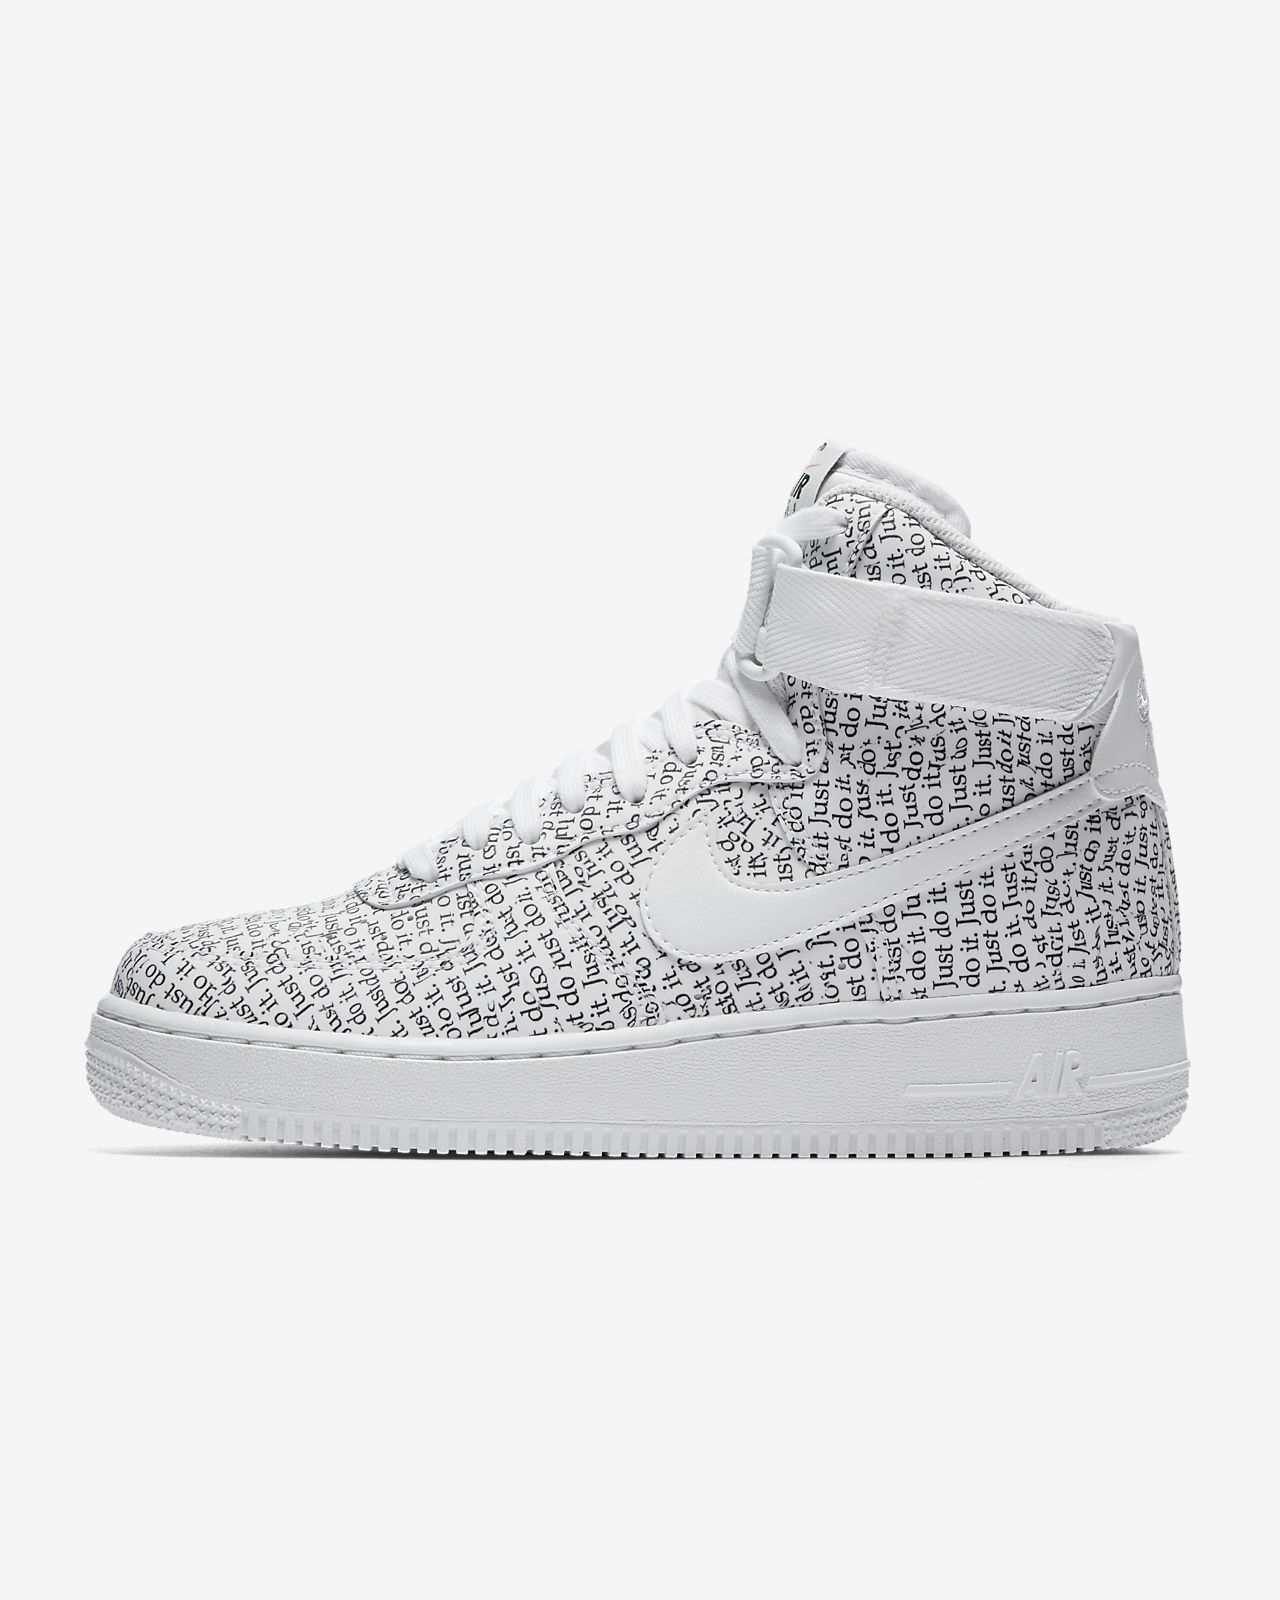 save off cc3ad 17eb3 Chaussure Nike Air Force 1 High LX pour Femme ...